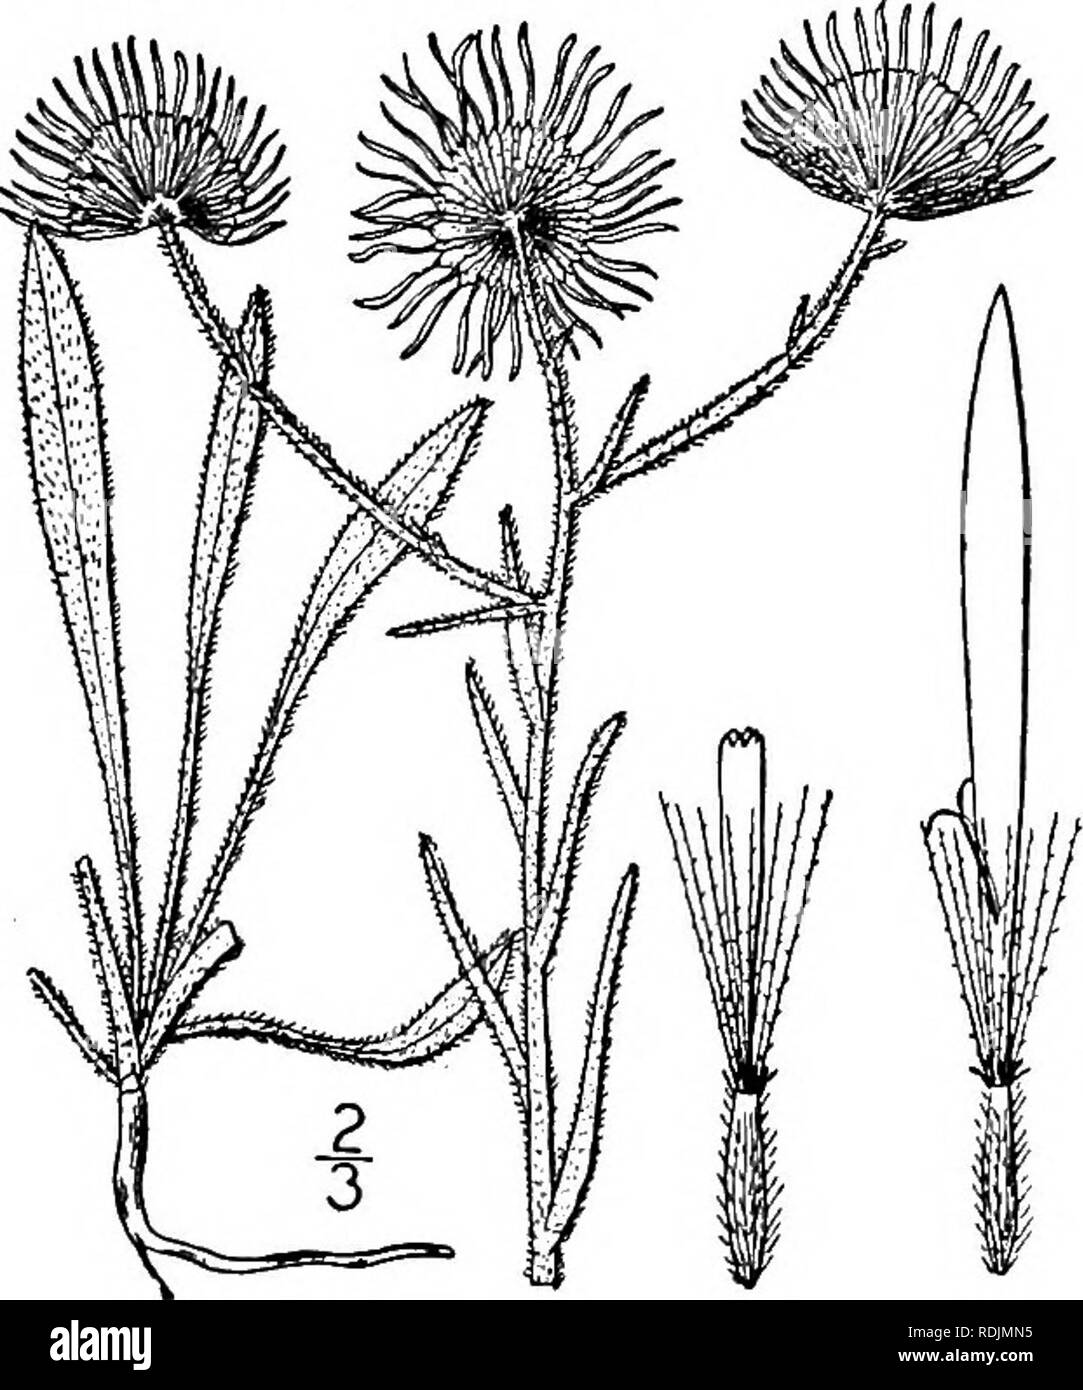 . An illustrated flora of the northern United States, Canada and the British possessions, from Newfoundland to the parallel of the southern boundary of Virginia, and from the Atlantic Ocean westward to the 102d meridian. Botany; Botany. 10. Erigeron philadelphicus L. Philadel- phia Fleabane. Skevish. Fig. 4370. Erigeron philadelphicus L. Sp. PI. 863. 1753. Perennial by stolons and offsets, soft-pubescent or sometimes nearly glabrous; stems slender, mostly branched above, l°-3° high. Basal and lower leaves spatulate or obovate, obtuse, dentate, 1/-3' long, narrowed into short petioles; upper st Stock Photo